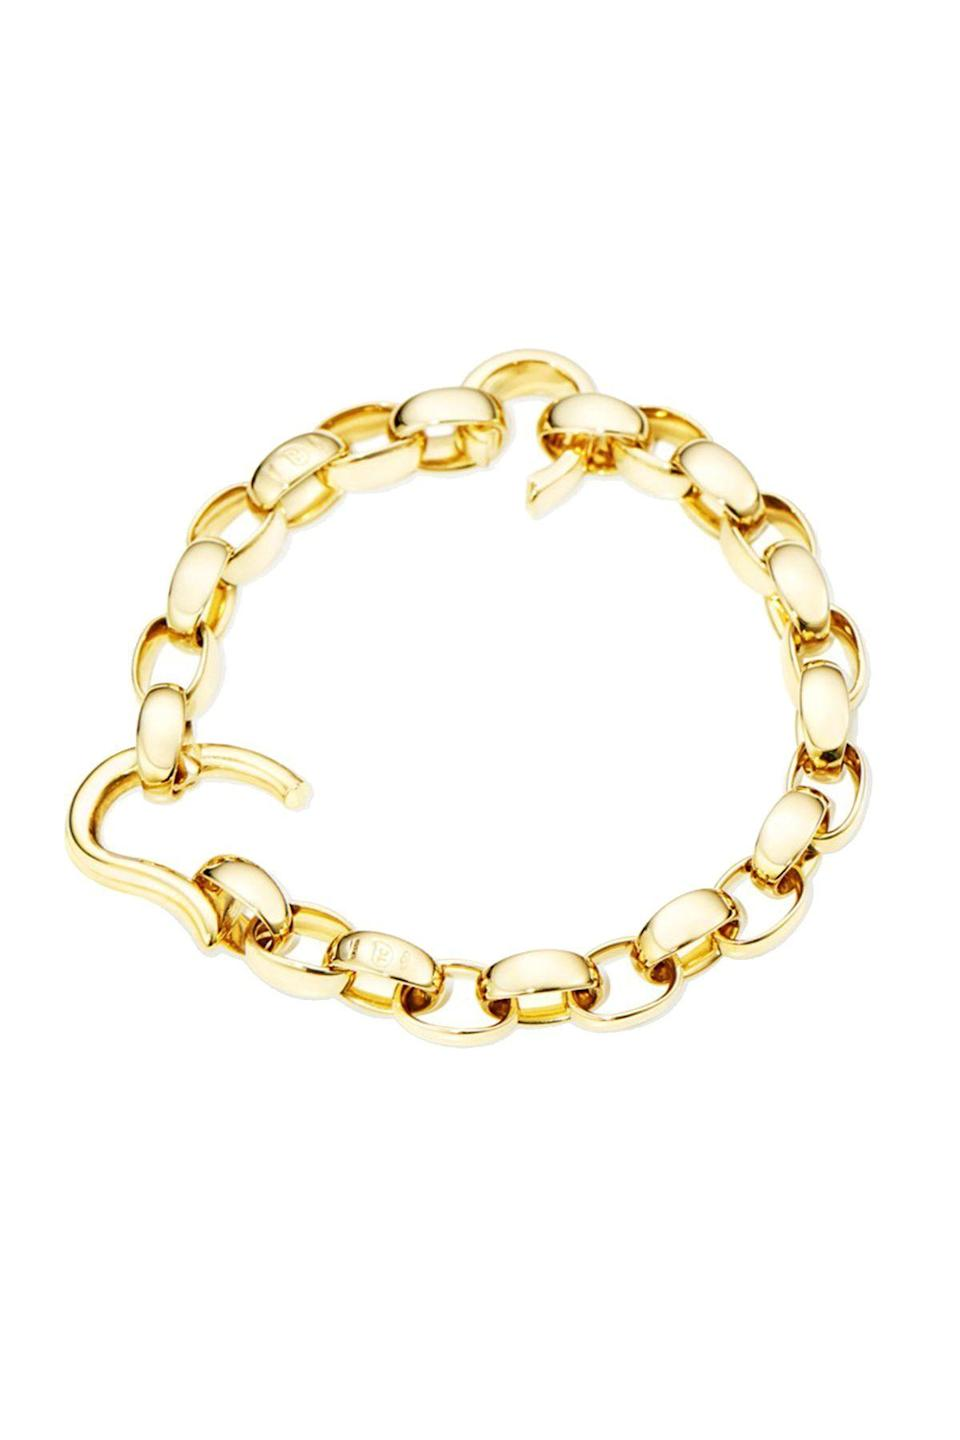 """<p><strong>Tamara Comolli</strong></p><p>neimanmarcus.com</p><p><strong>$8800.00</strong></p><p><a href=""""https://go.redirectingat.com?id=74968X1596630&url=https%3A%2F%2Fwww.neimanmarcus.com%2Fp%2Ftamara-comolli-drop-18k-yellow-gold-bracelet-prod228190232&sref=https%3A%2F%2Fwww.townandcountrymag.com%2Fstyle%2Fjewelry-and-watches%2Fg36465168%2Fbest-fine-jewelry-online%2F"""" rel=""""nofollow noopener"""" target=""""_blank"""" data-ylk=""""slk:Shop Now"""" class=""""link rapid-noclick-resp"""">Shop Now</a></p><p>The beauty of Tamara Comolli's handmade gold bracelet is that it can be worn alone as an elegant everyday piece, or turned into a charm bracelet by clipping on the brand's colorful Mikado Bouquet pendants.</p>"""